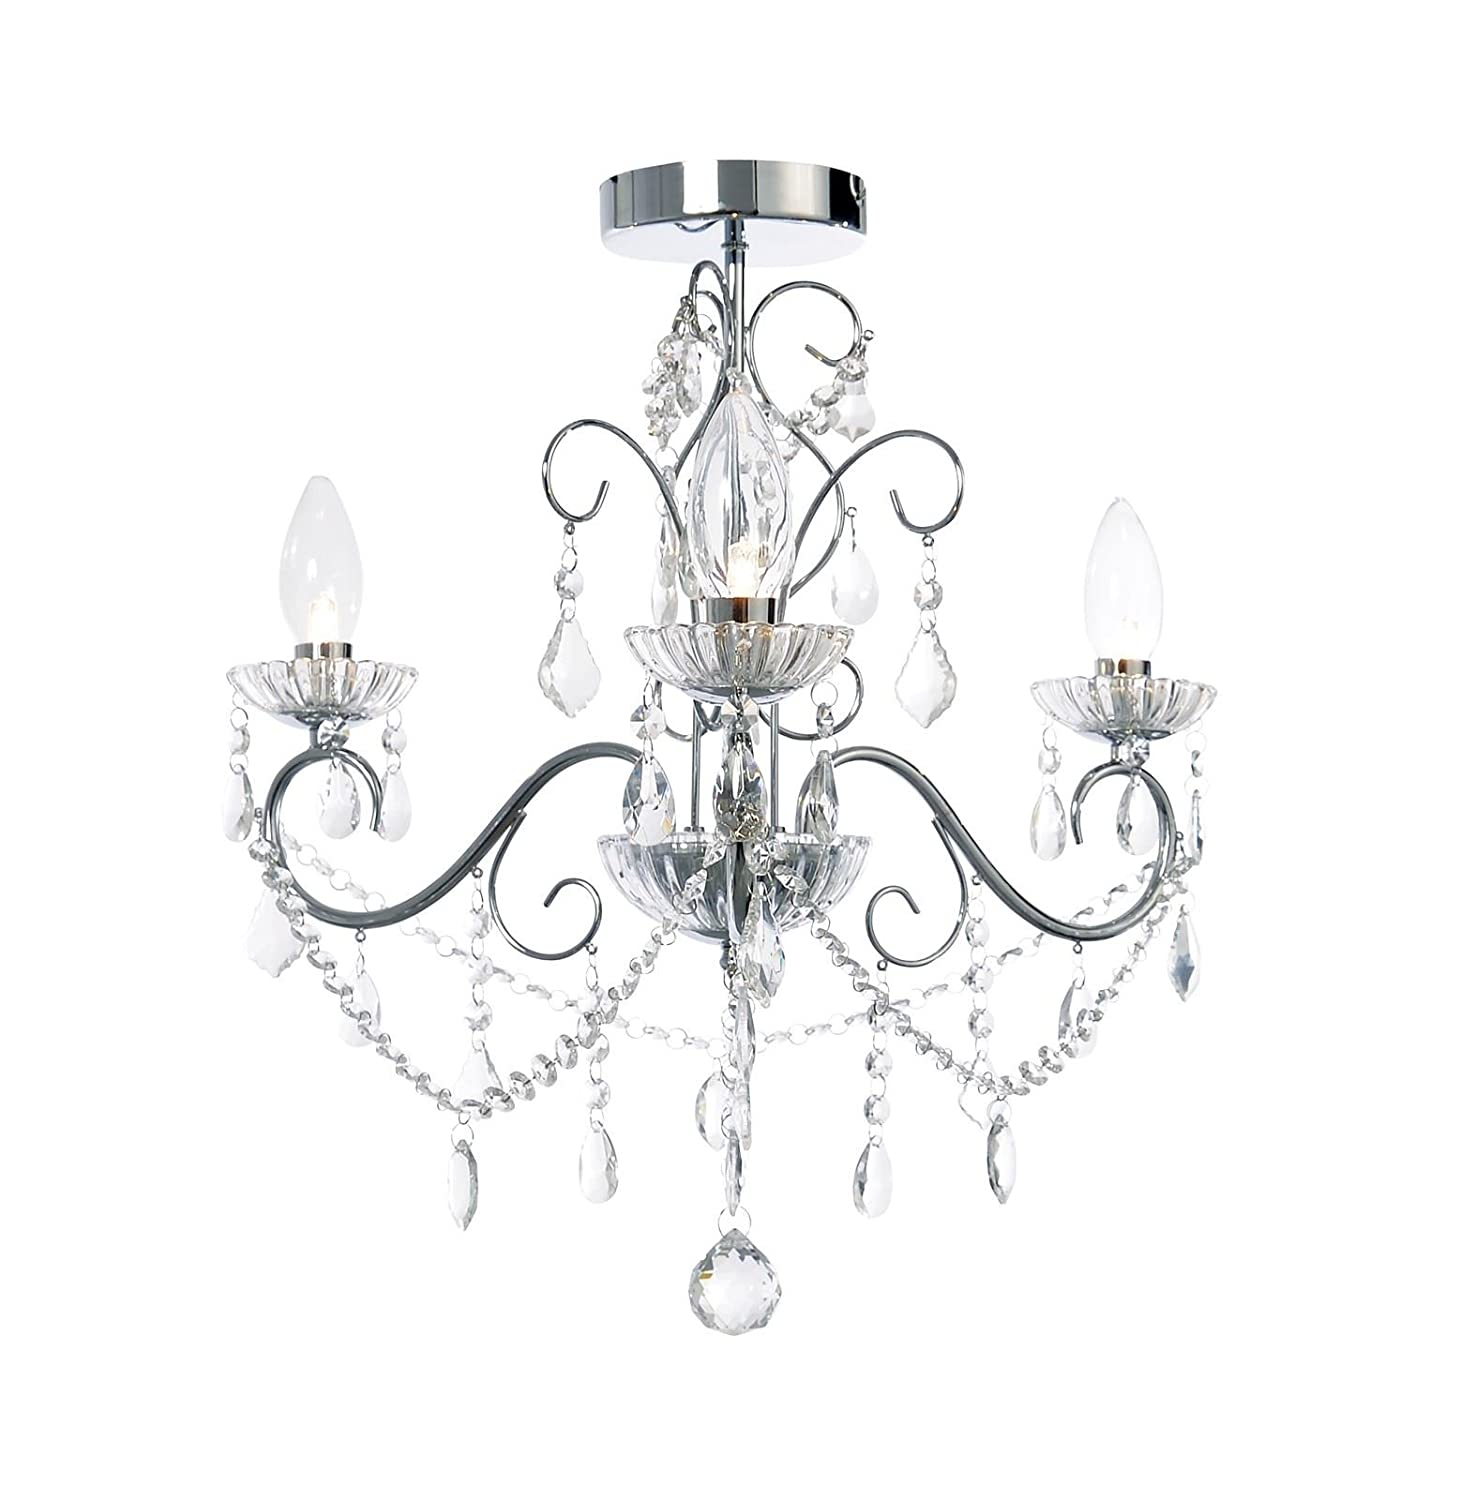 Forum Lighting 3 Light Bathroom Chandelier - Beautiful Elegant Decorative Chandelier SPA-20182-CHR Forum Lighting Solutions